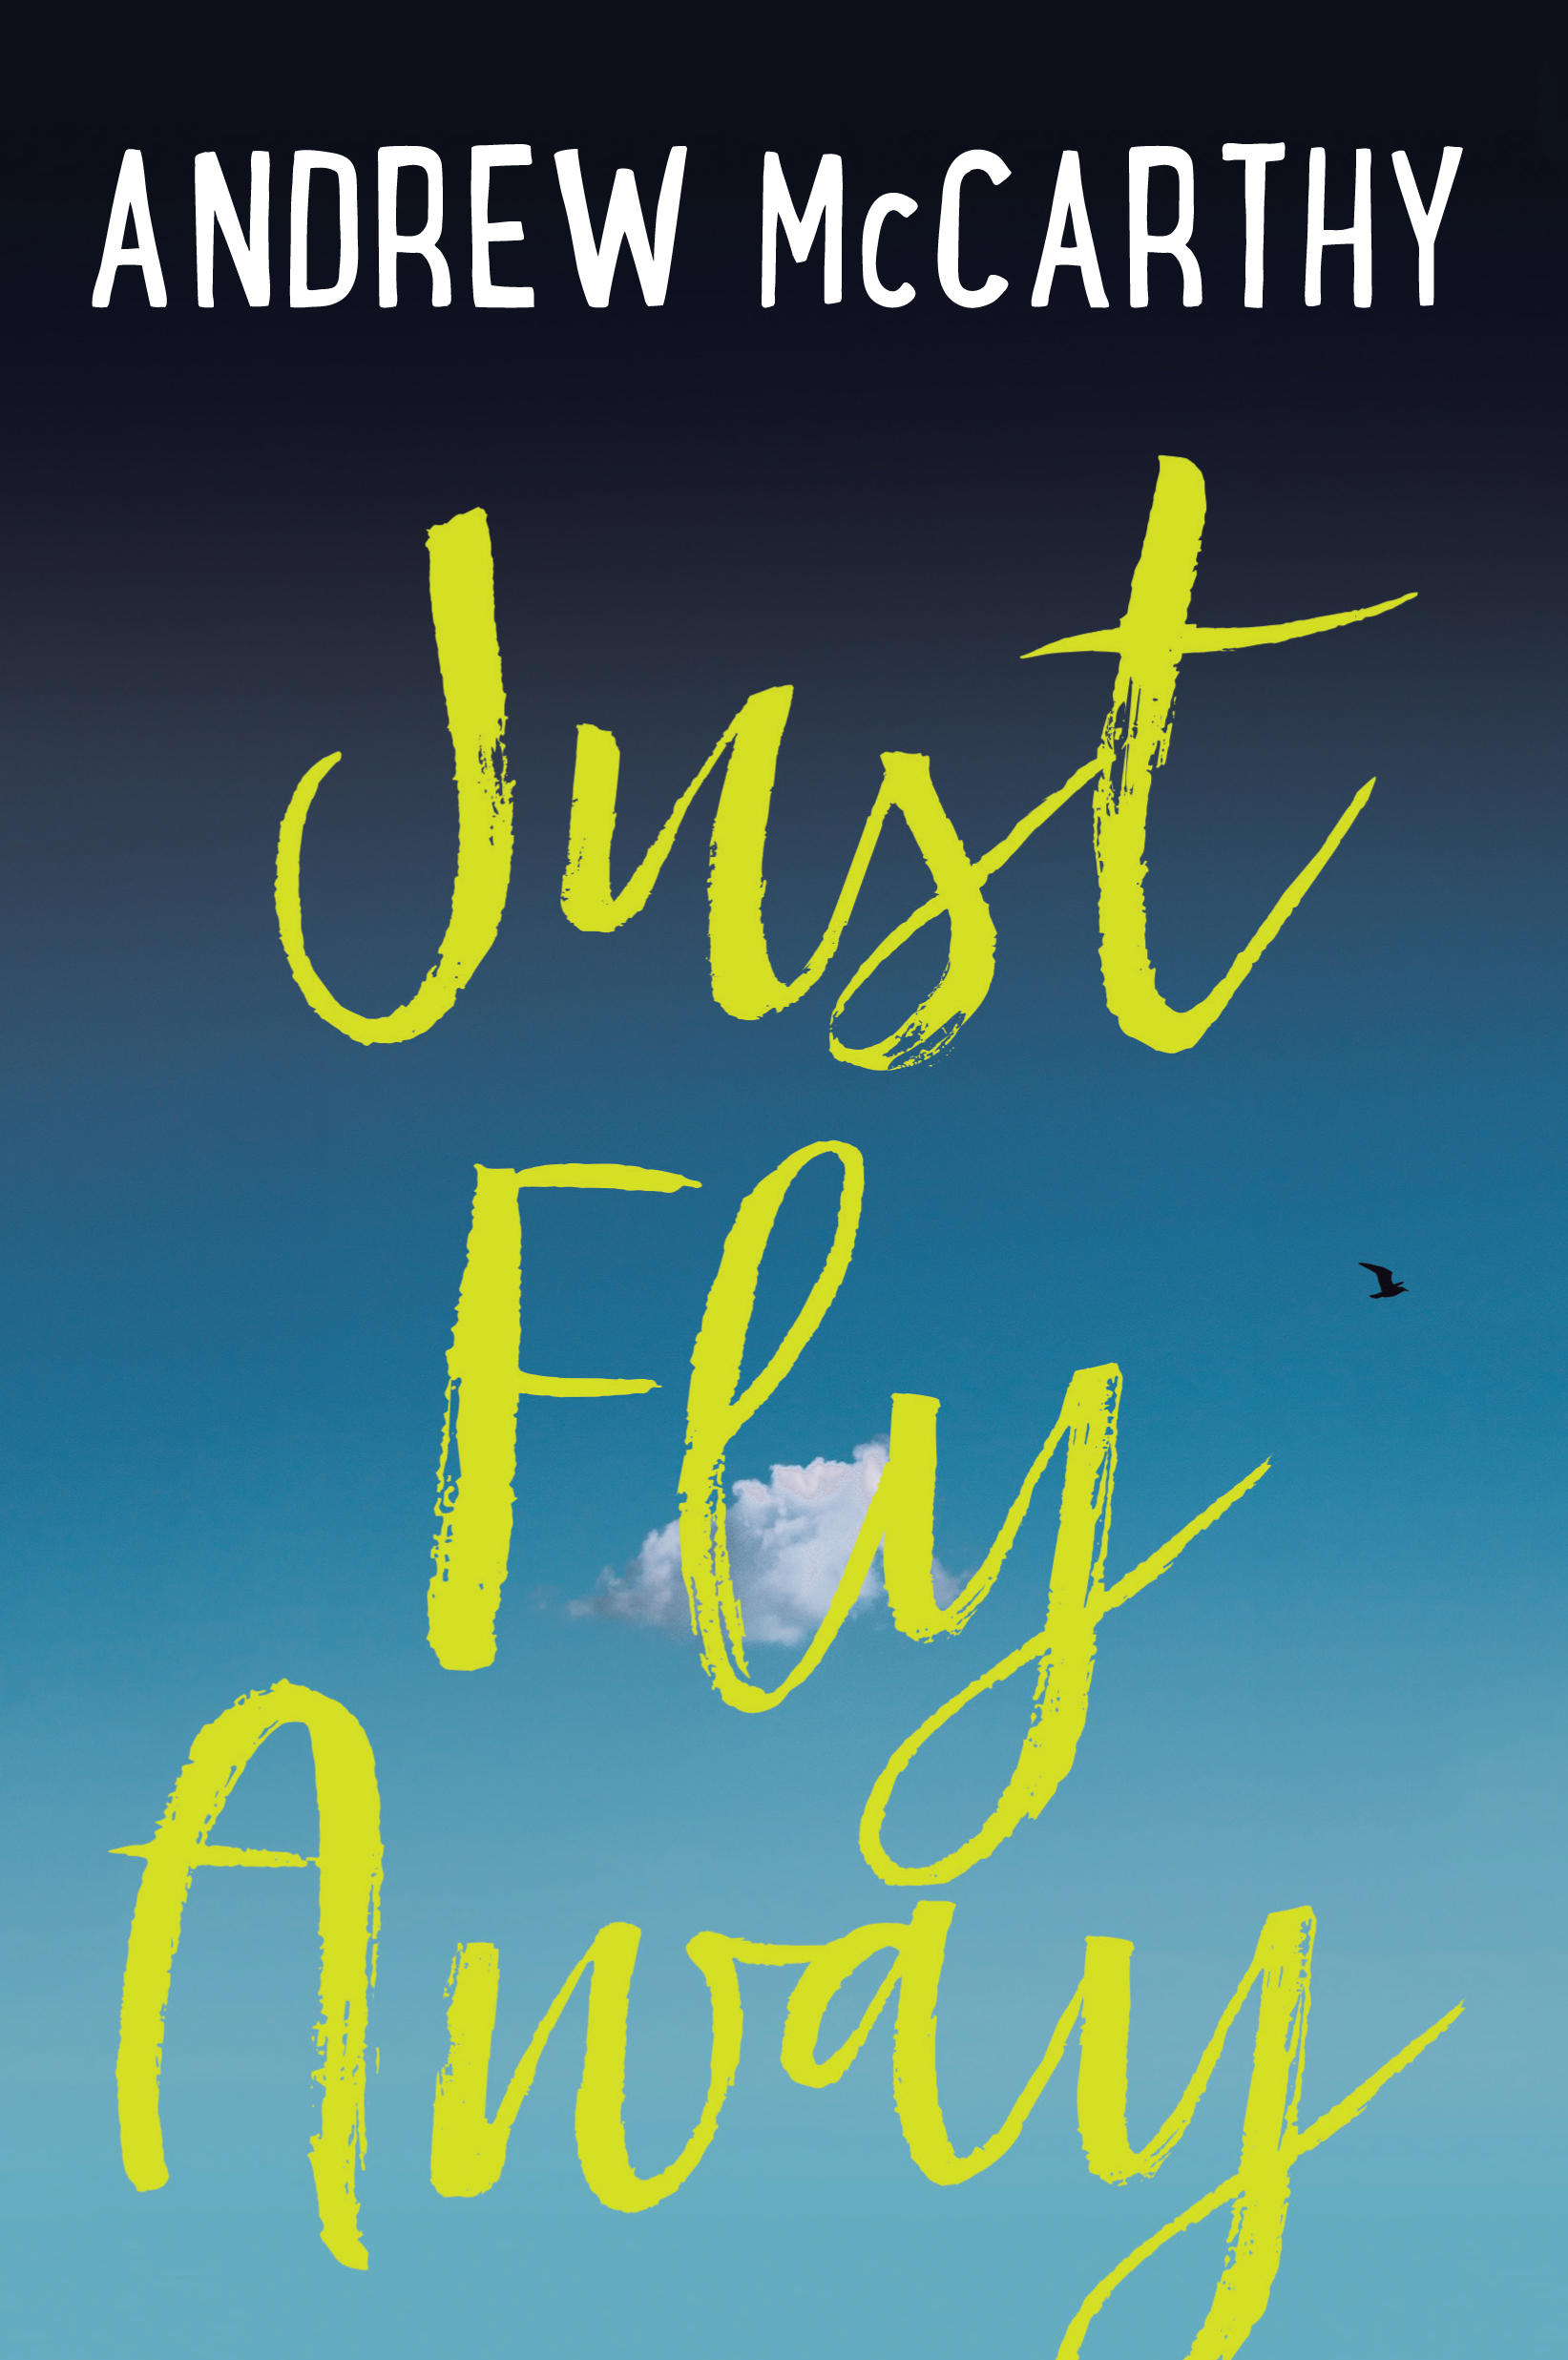 Andrew Mccarthy Adds Young Adult Author To Resume With Just Fly